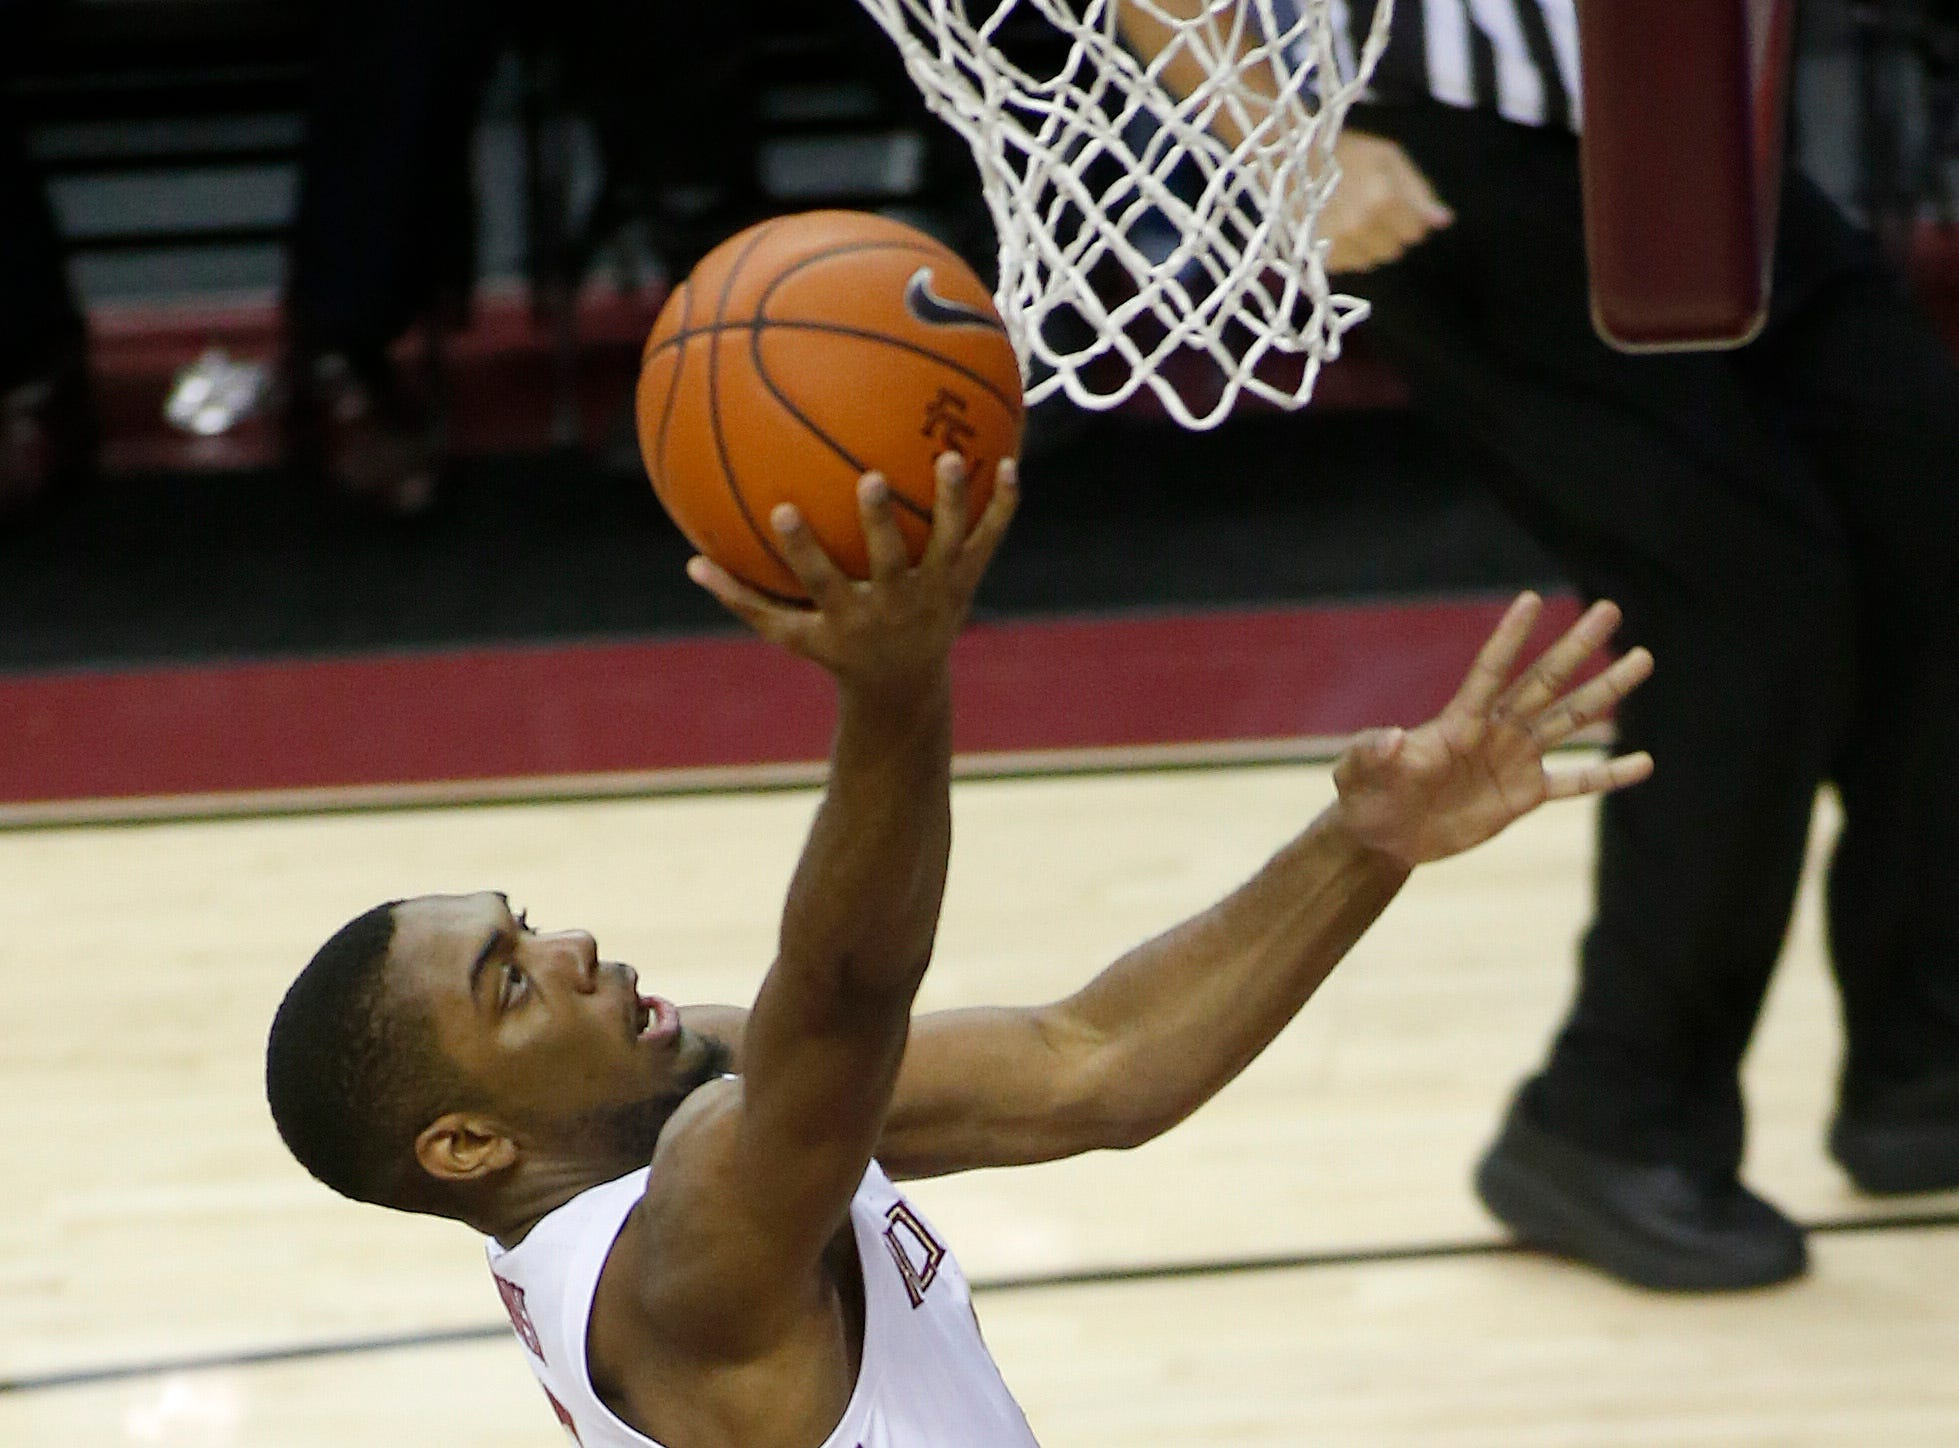 Dec 3, 2018; Tallahassee, FL, USA;  Florida State Seminoles guard Trent Forrest (3) scores aganst the Troy Trojans at Donald L. Tucker Center during the first half. Mandatory Credit: Glenn Beil-USA TODAY Sports